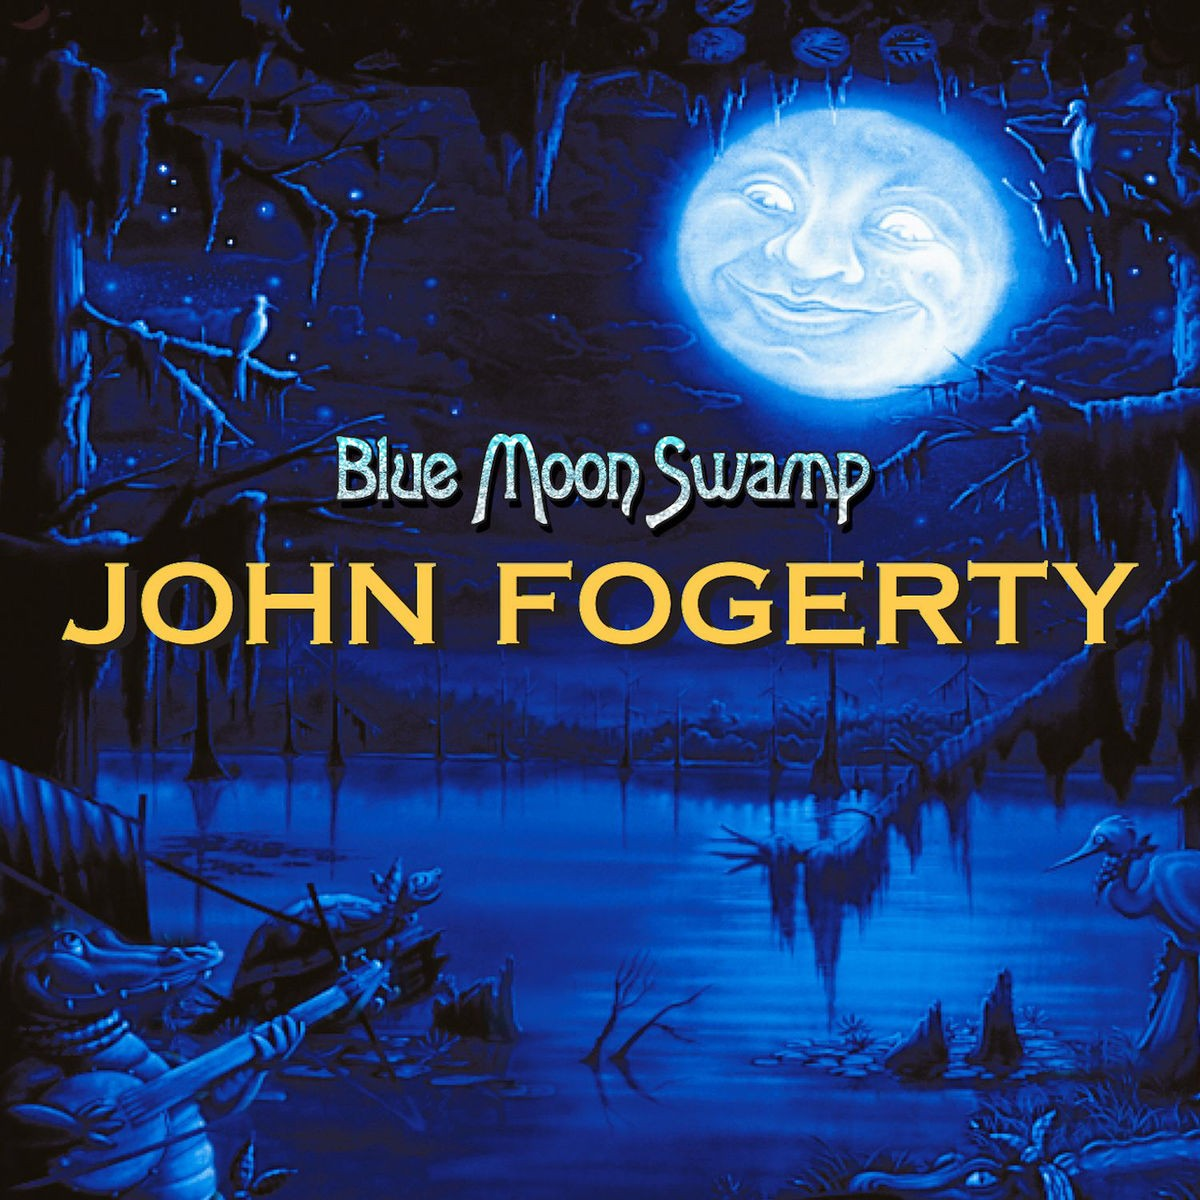 John Fogerty - Blue Moon Swamp (Limited Edition) VINYL - 5053833892